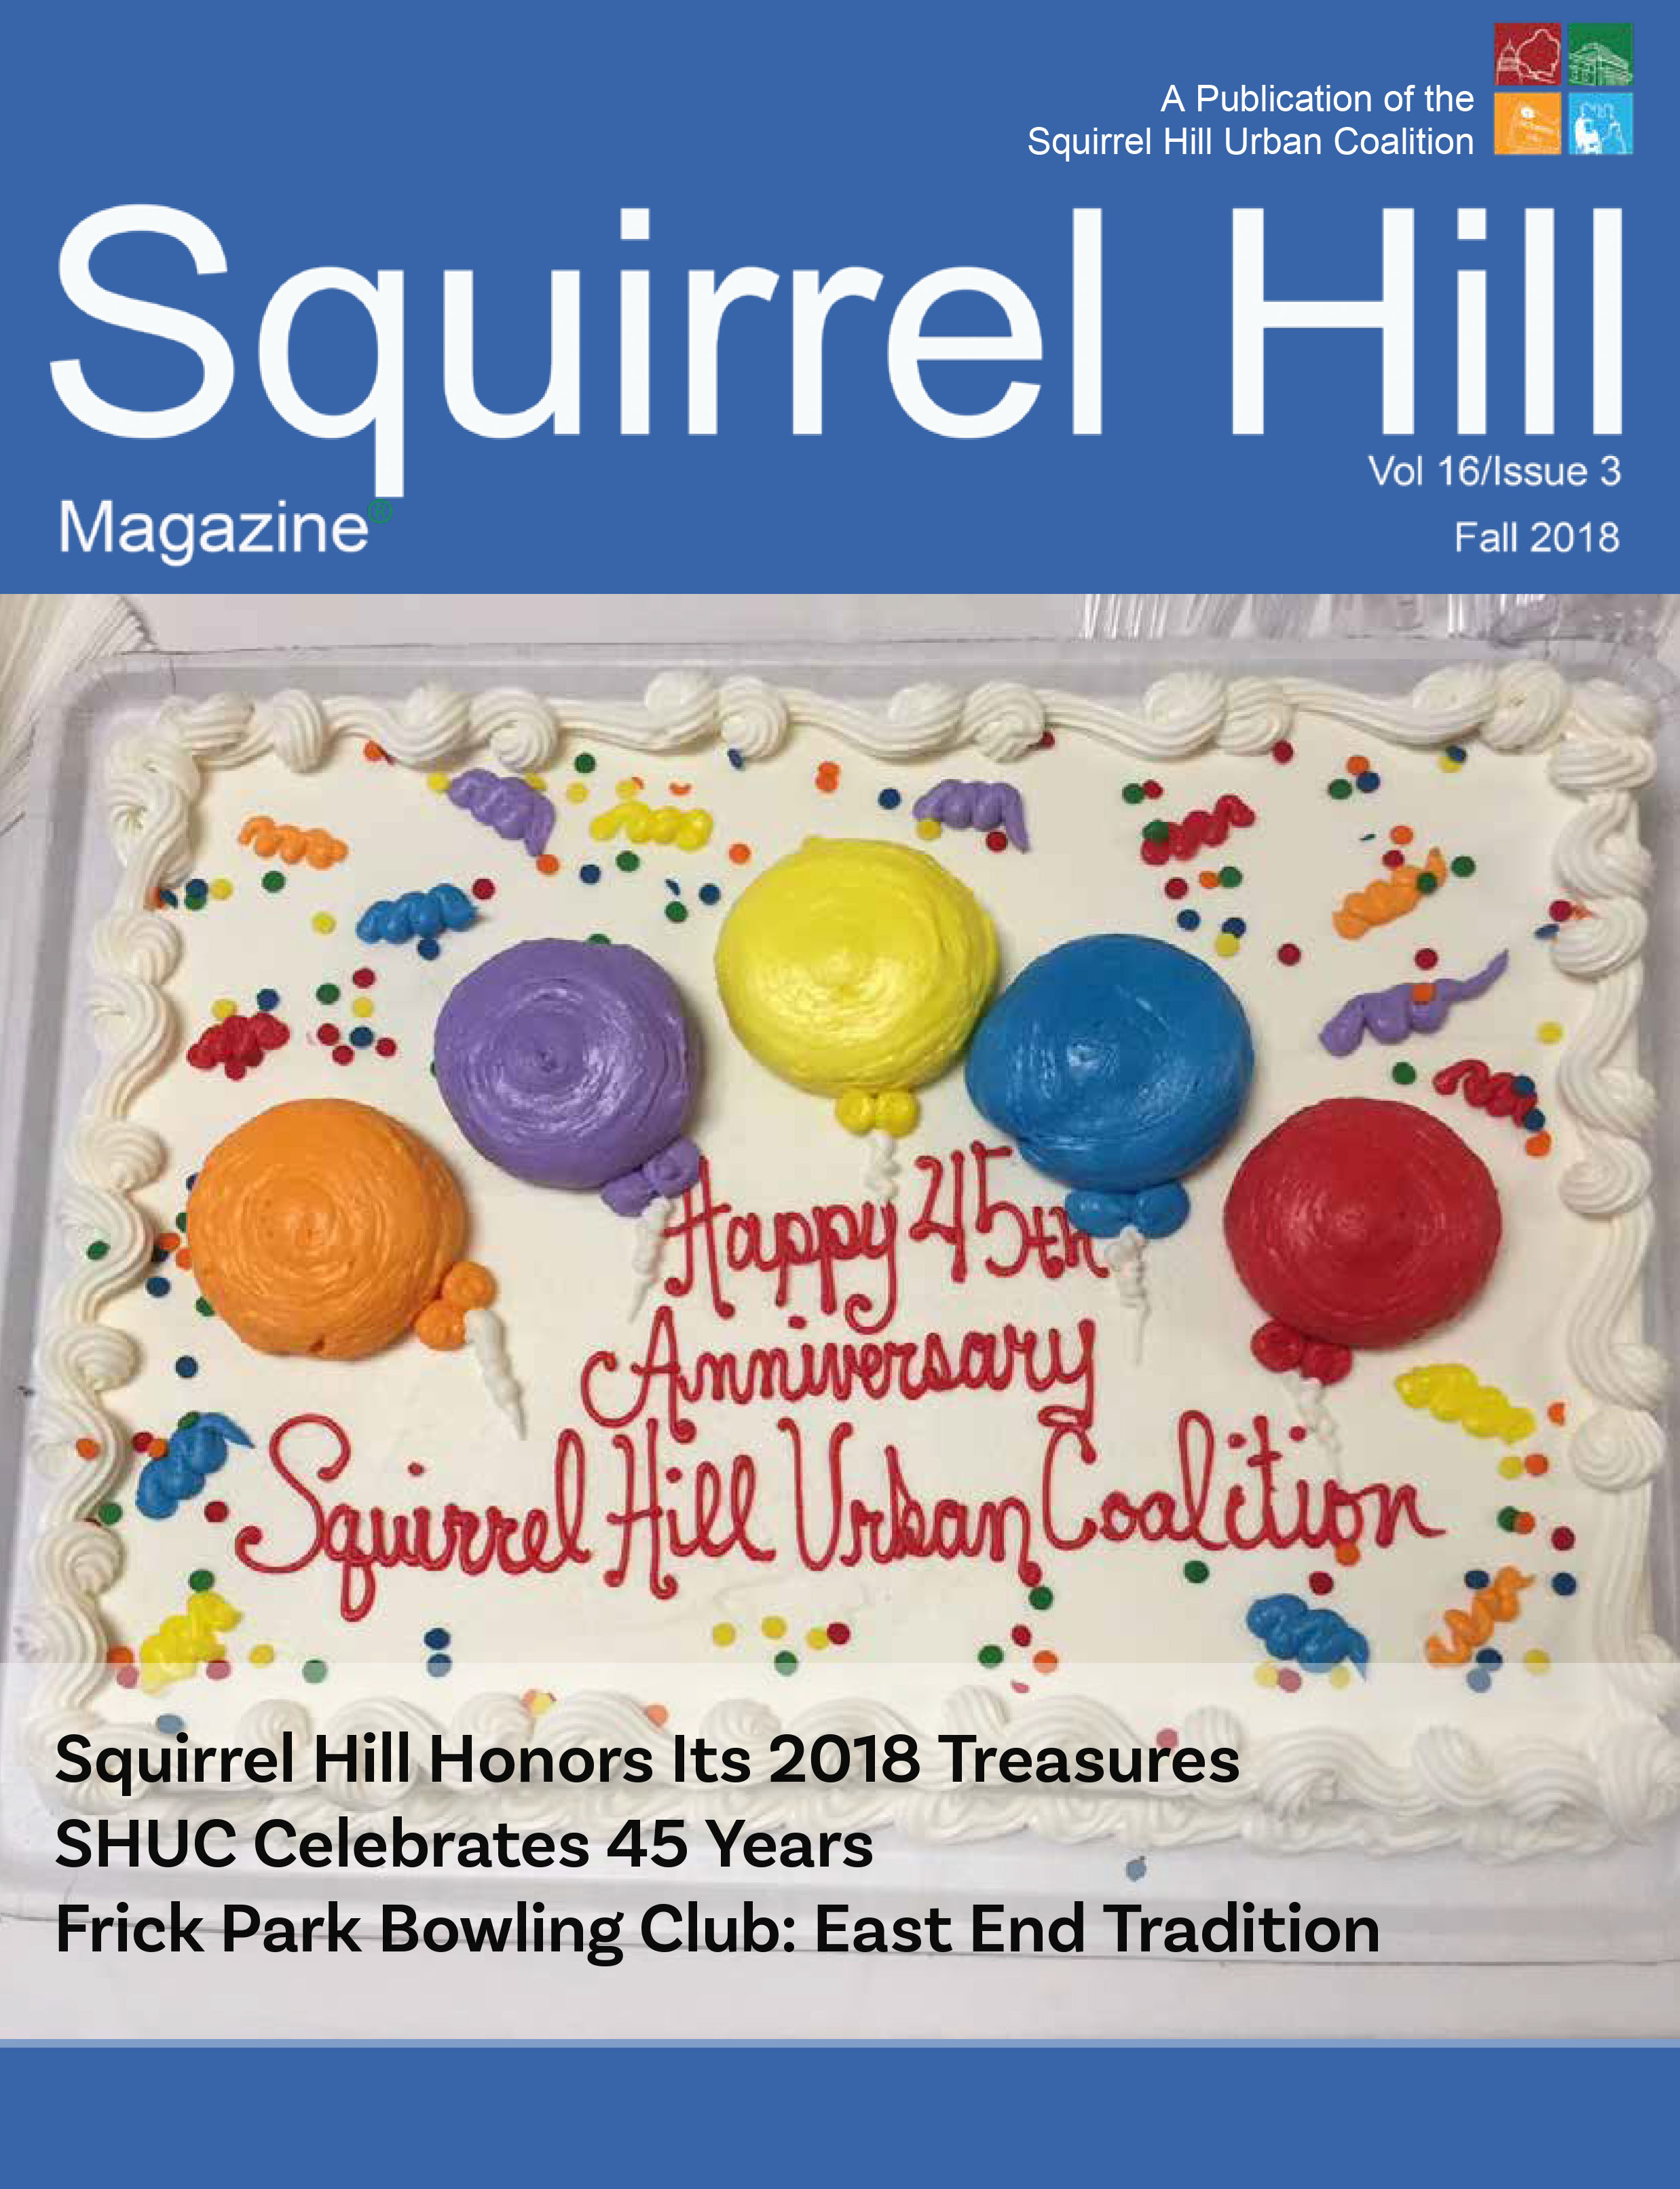 Squirrel Hill Magazine Fall 2018